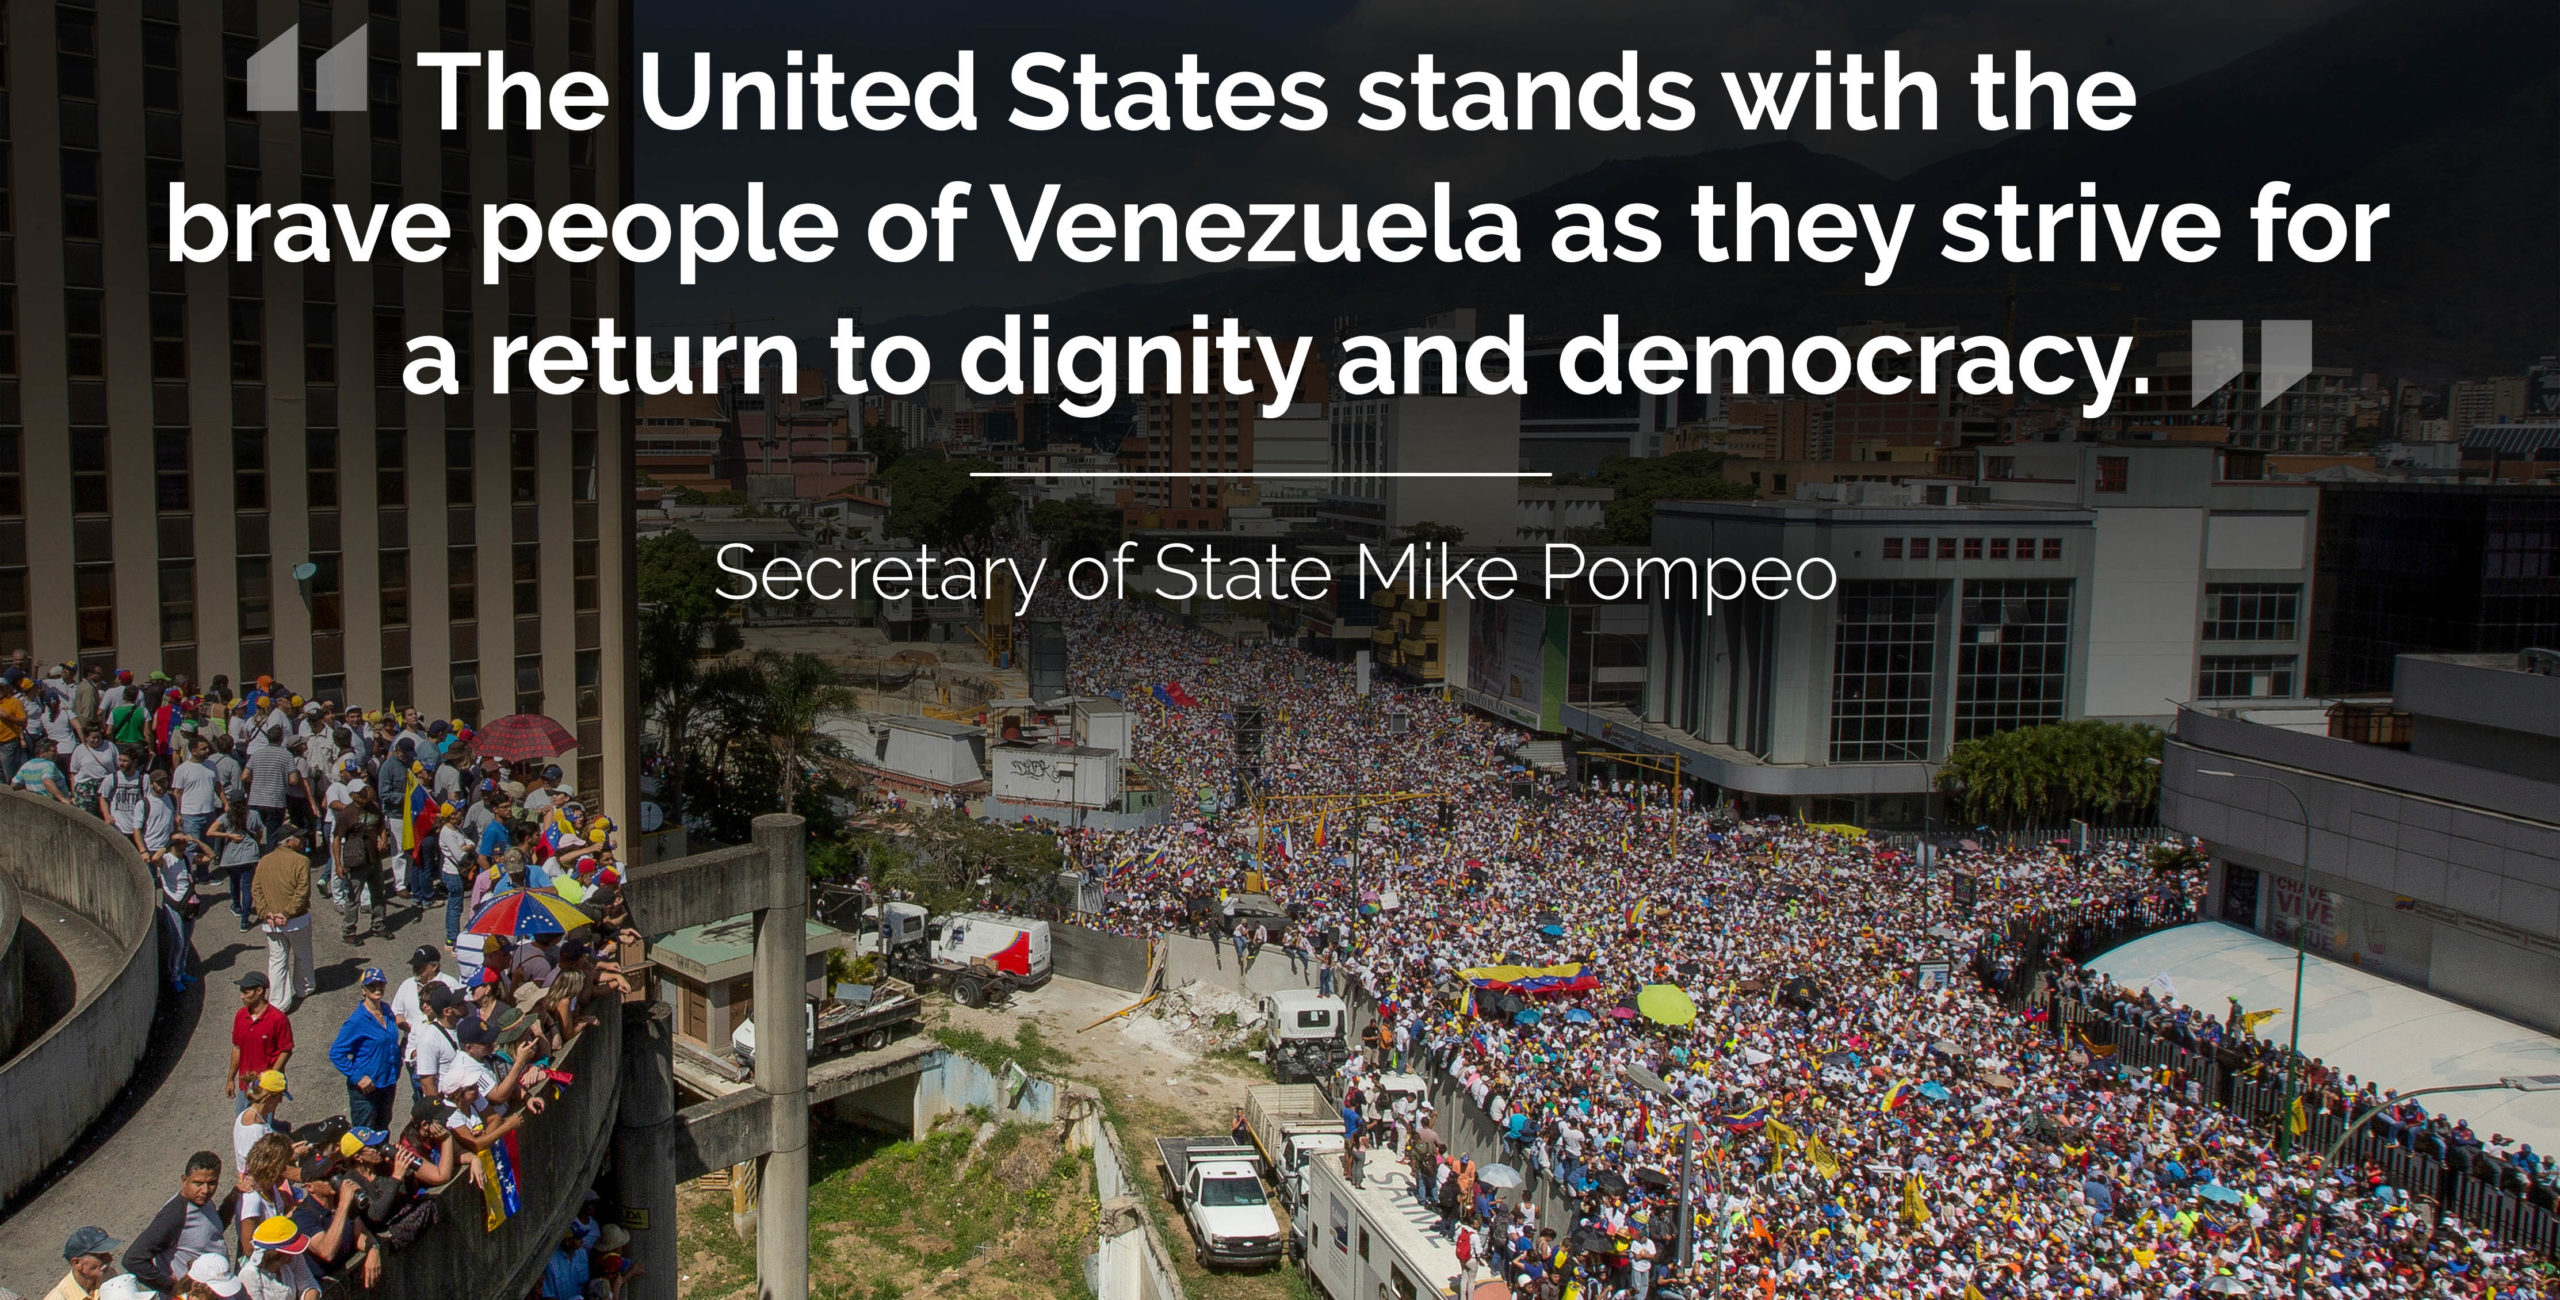 """Photo of protest in Venezuela with text: """"'The United States stands with the brave people of Venezuela as they strive for a return to dignity and democracy.' - Secretary of State Mike Pompeo"""""""